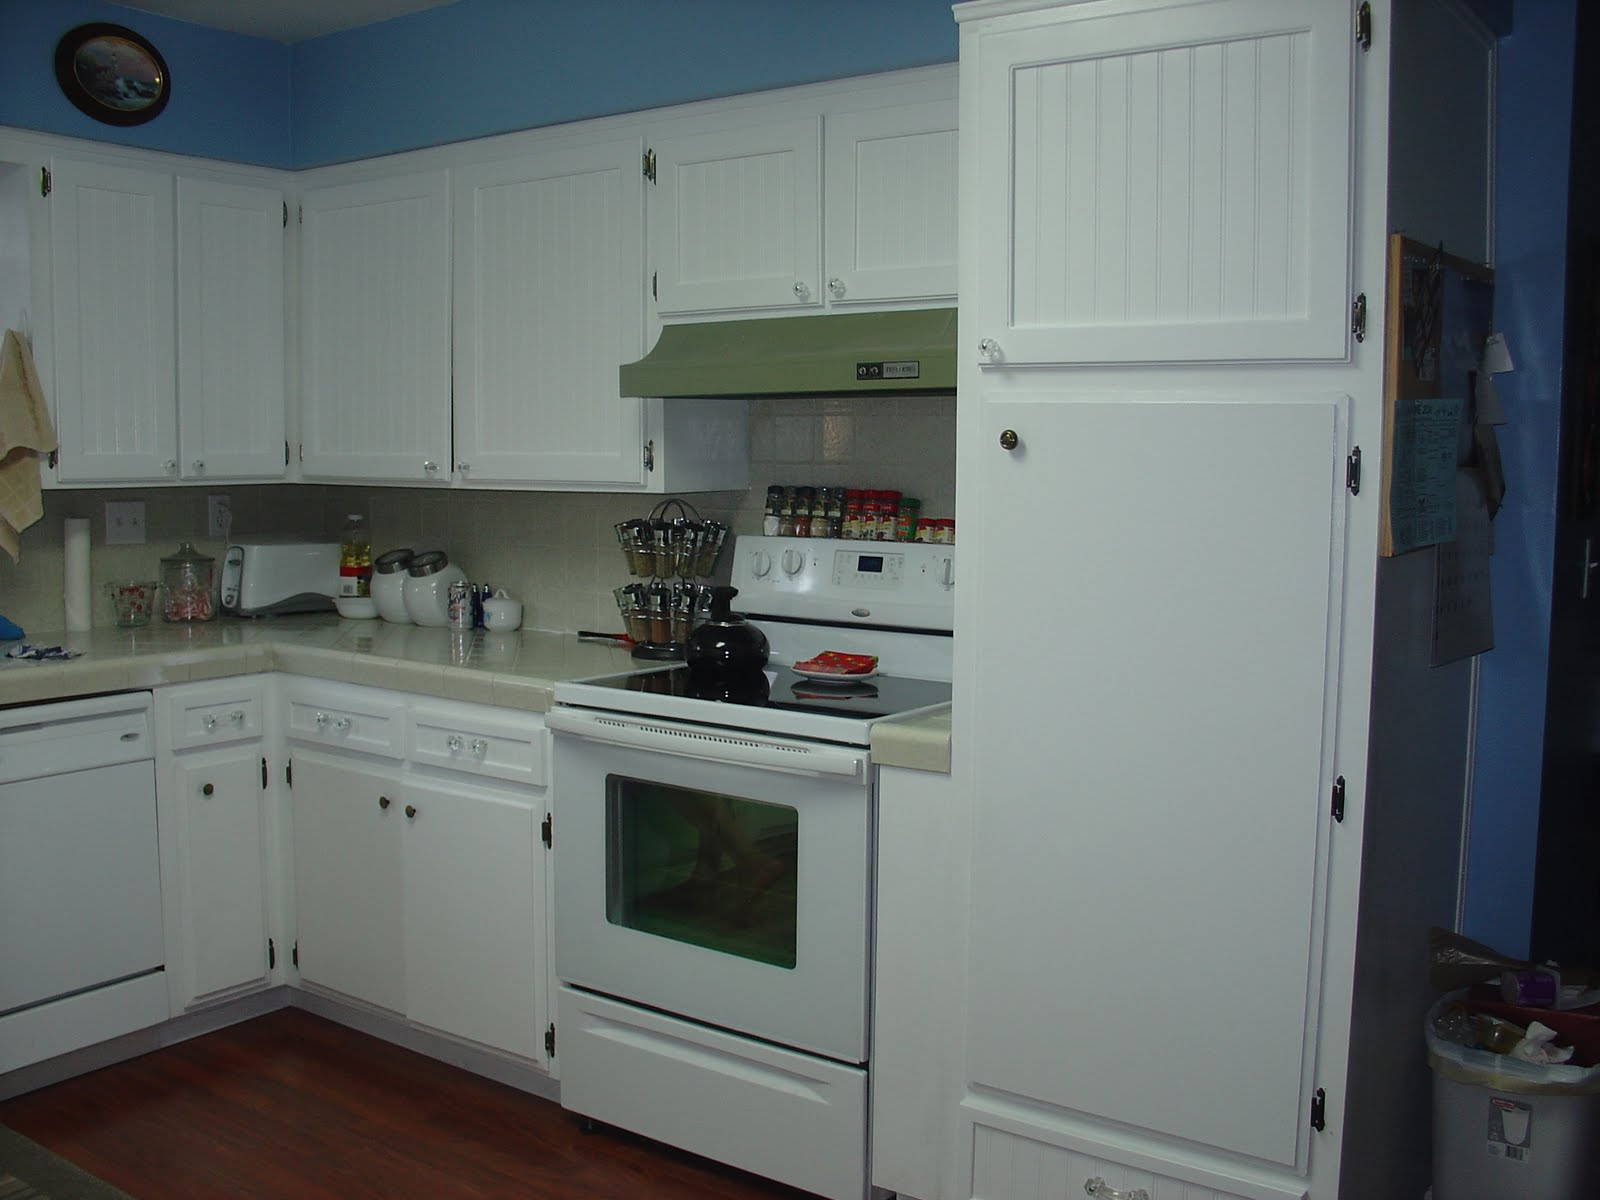 The isaac family my new kitchen cabinet doors - Reface bathroom cabinets and replace doors ...